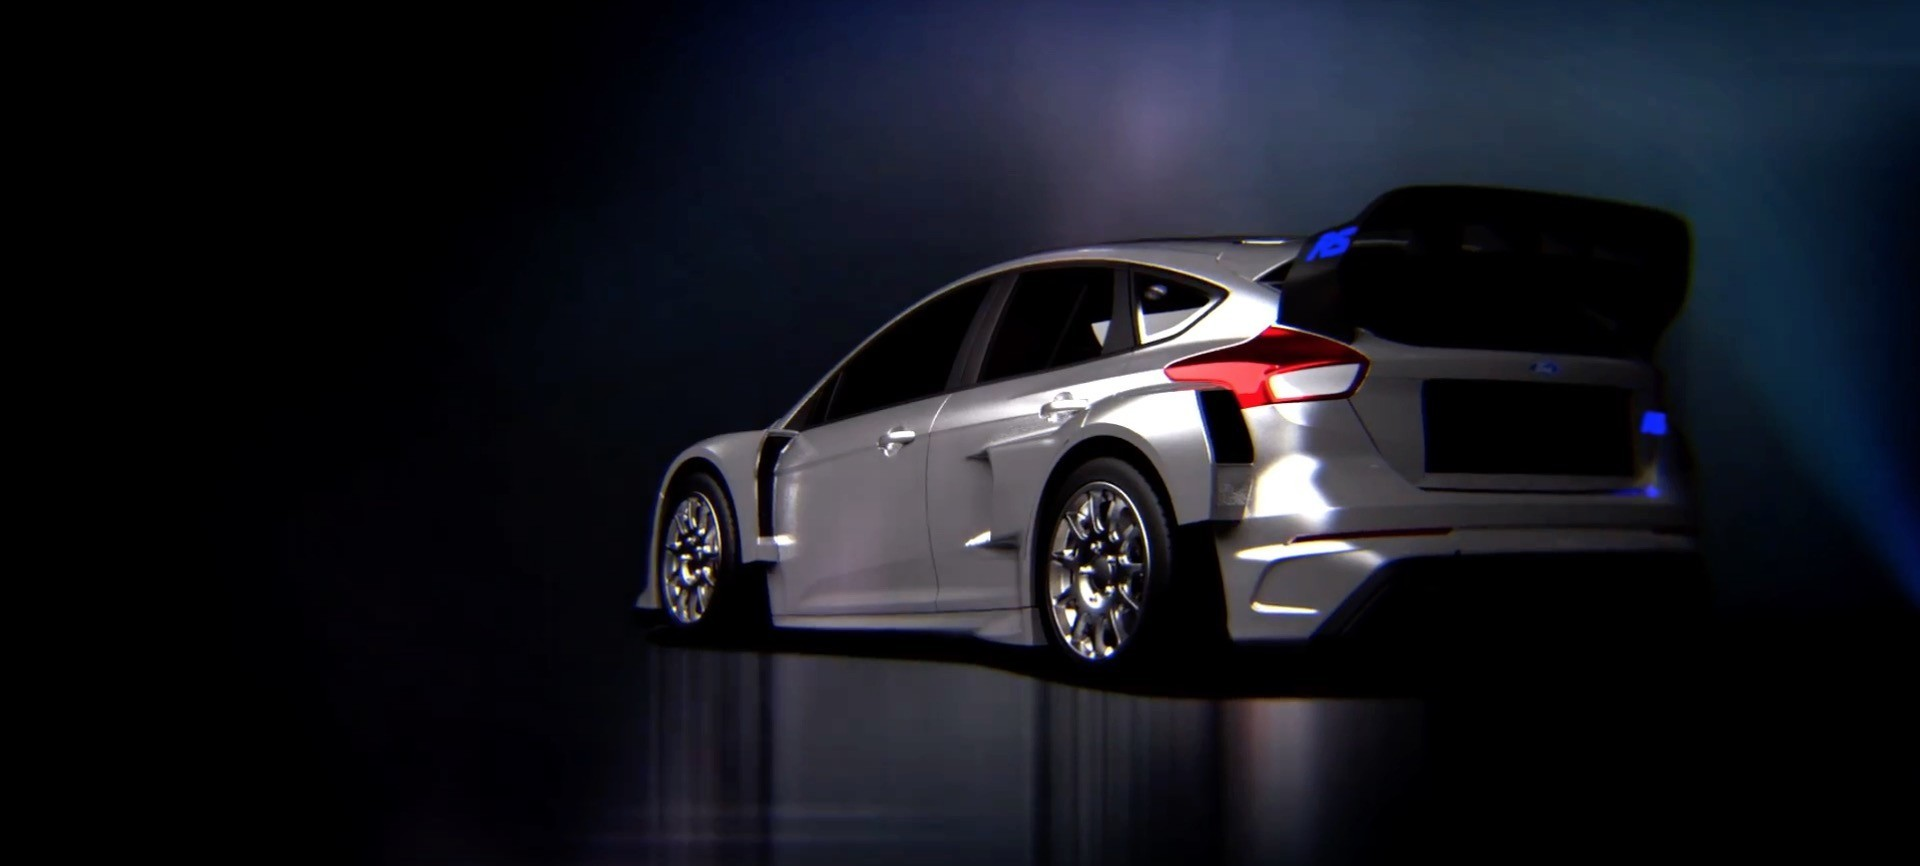 What Is Ecoboost >> 2016 Ford Focus RS Rallycross Car Confirmed, Here Are the Specs - autoevolution